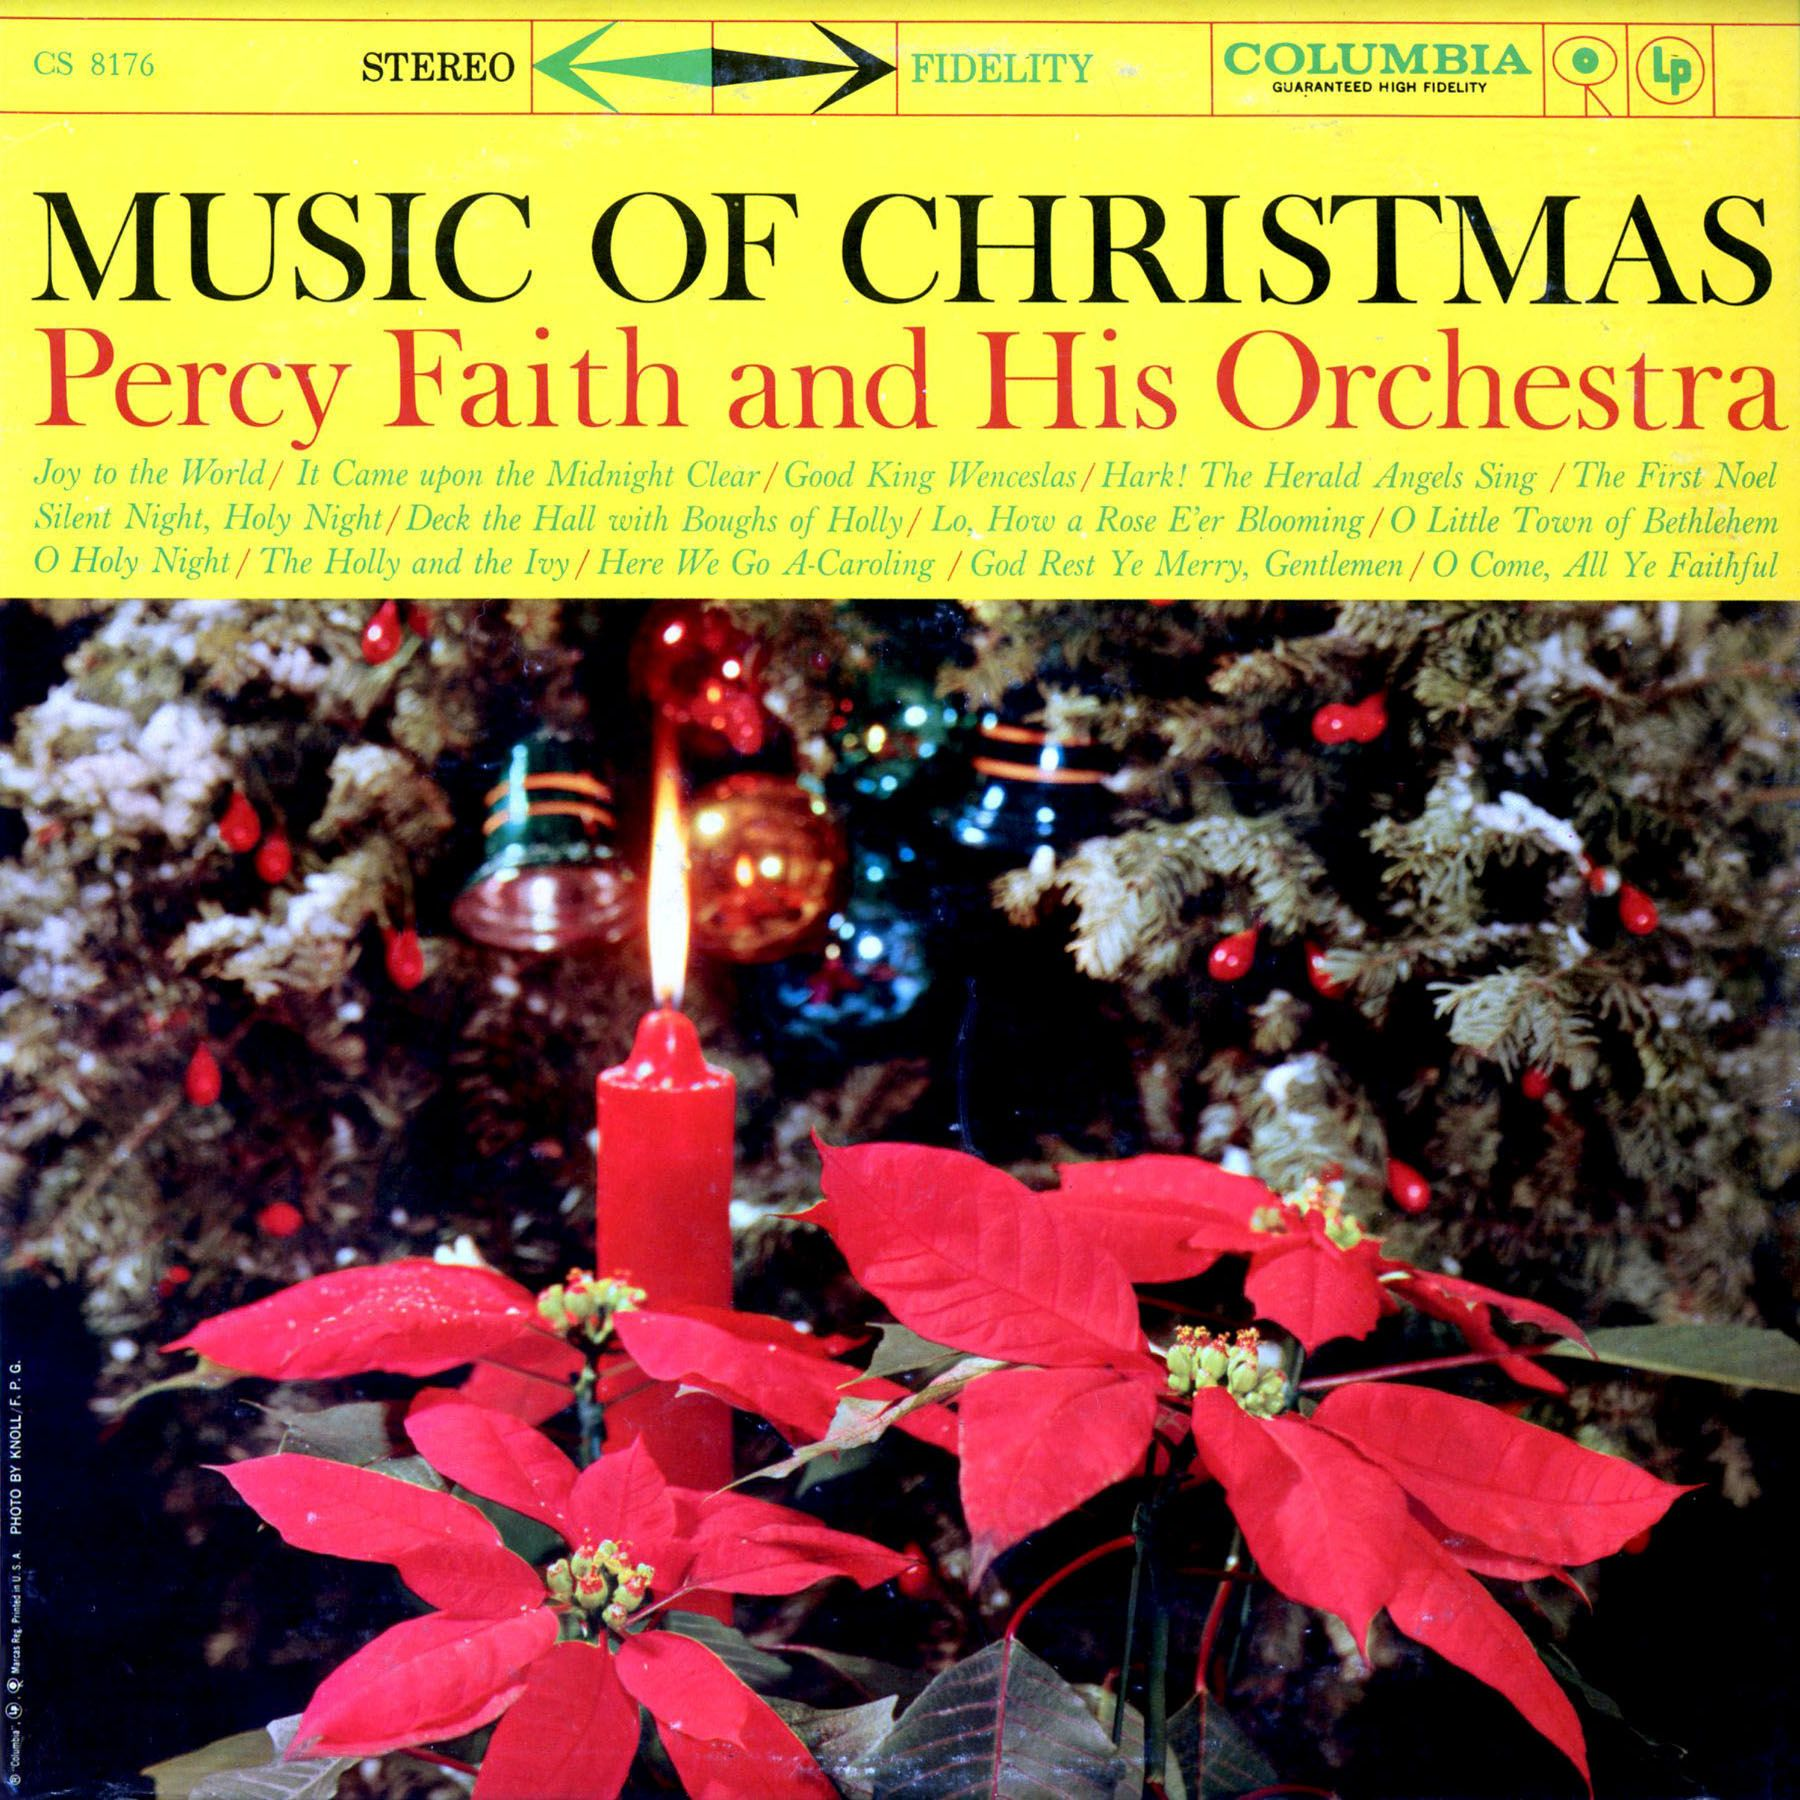 Percy Faith & His Orchestra - Music of Christmas | Christmas ...